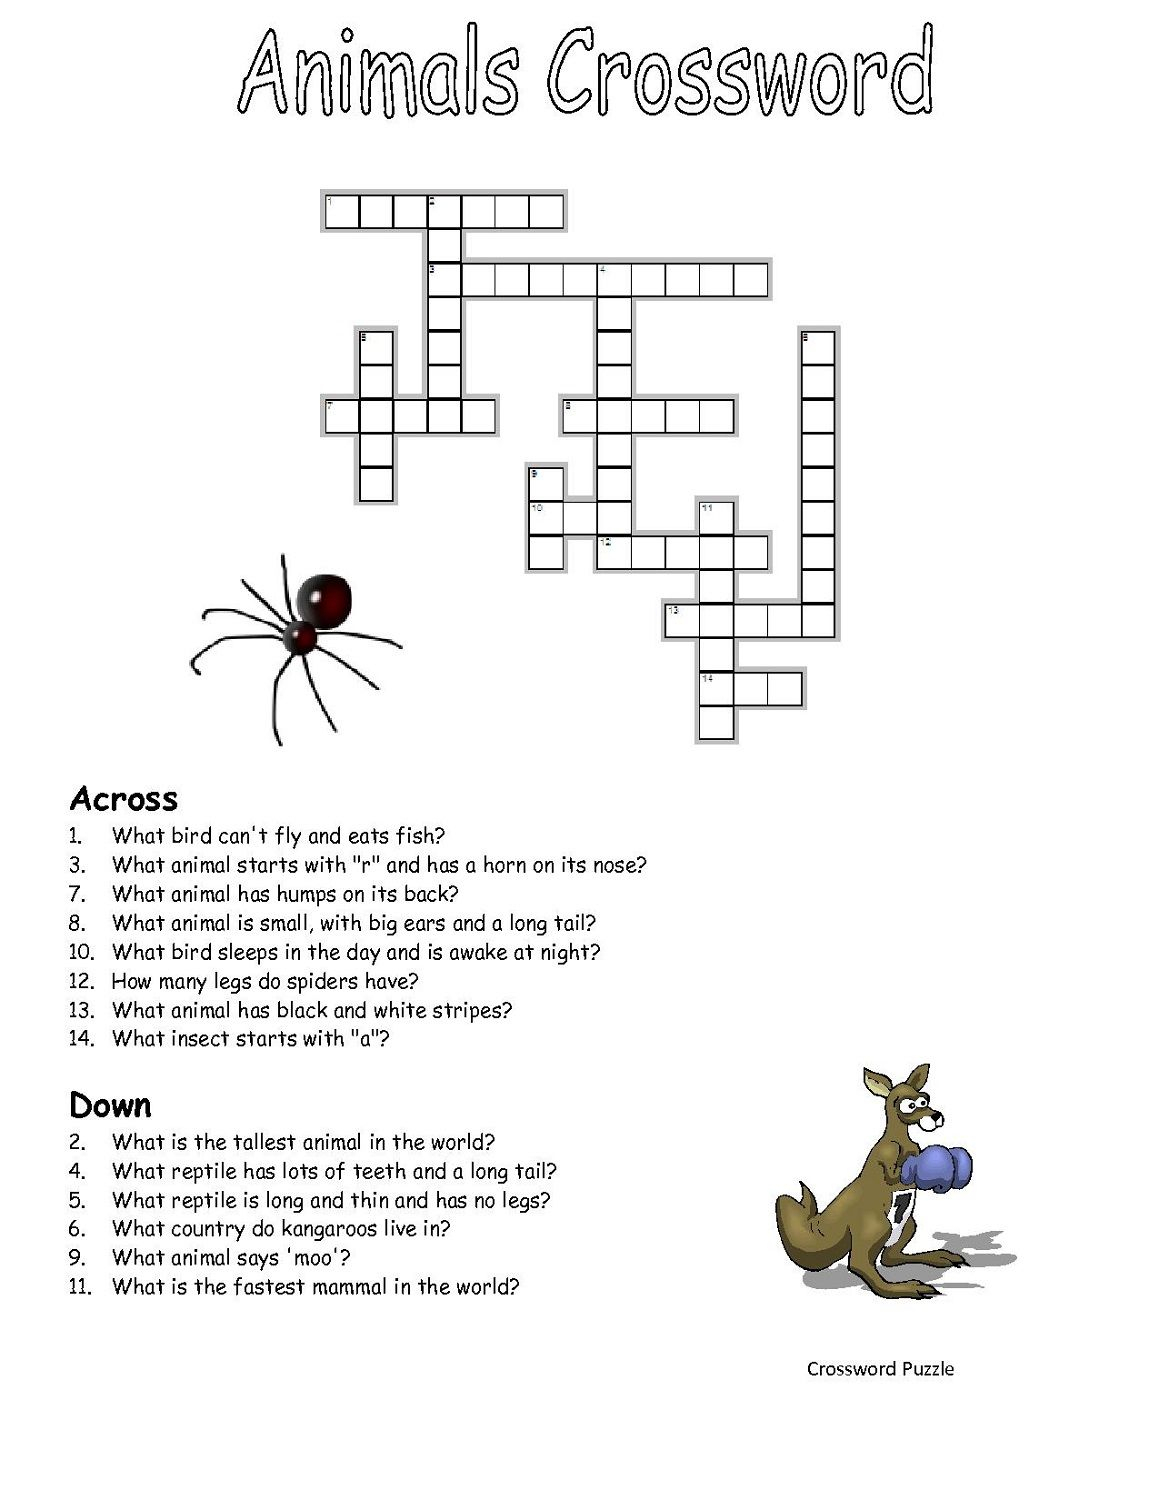 Crossword-Puzzles-Kids-Animal | Work It | Crossword, Puzzle - Printable Crossword Puzzle Animals